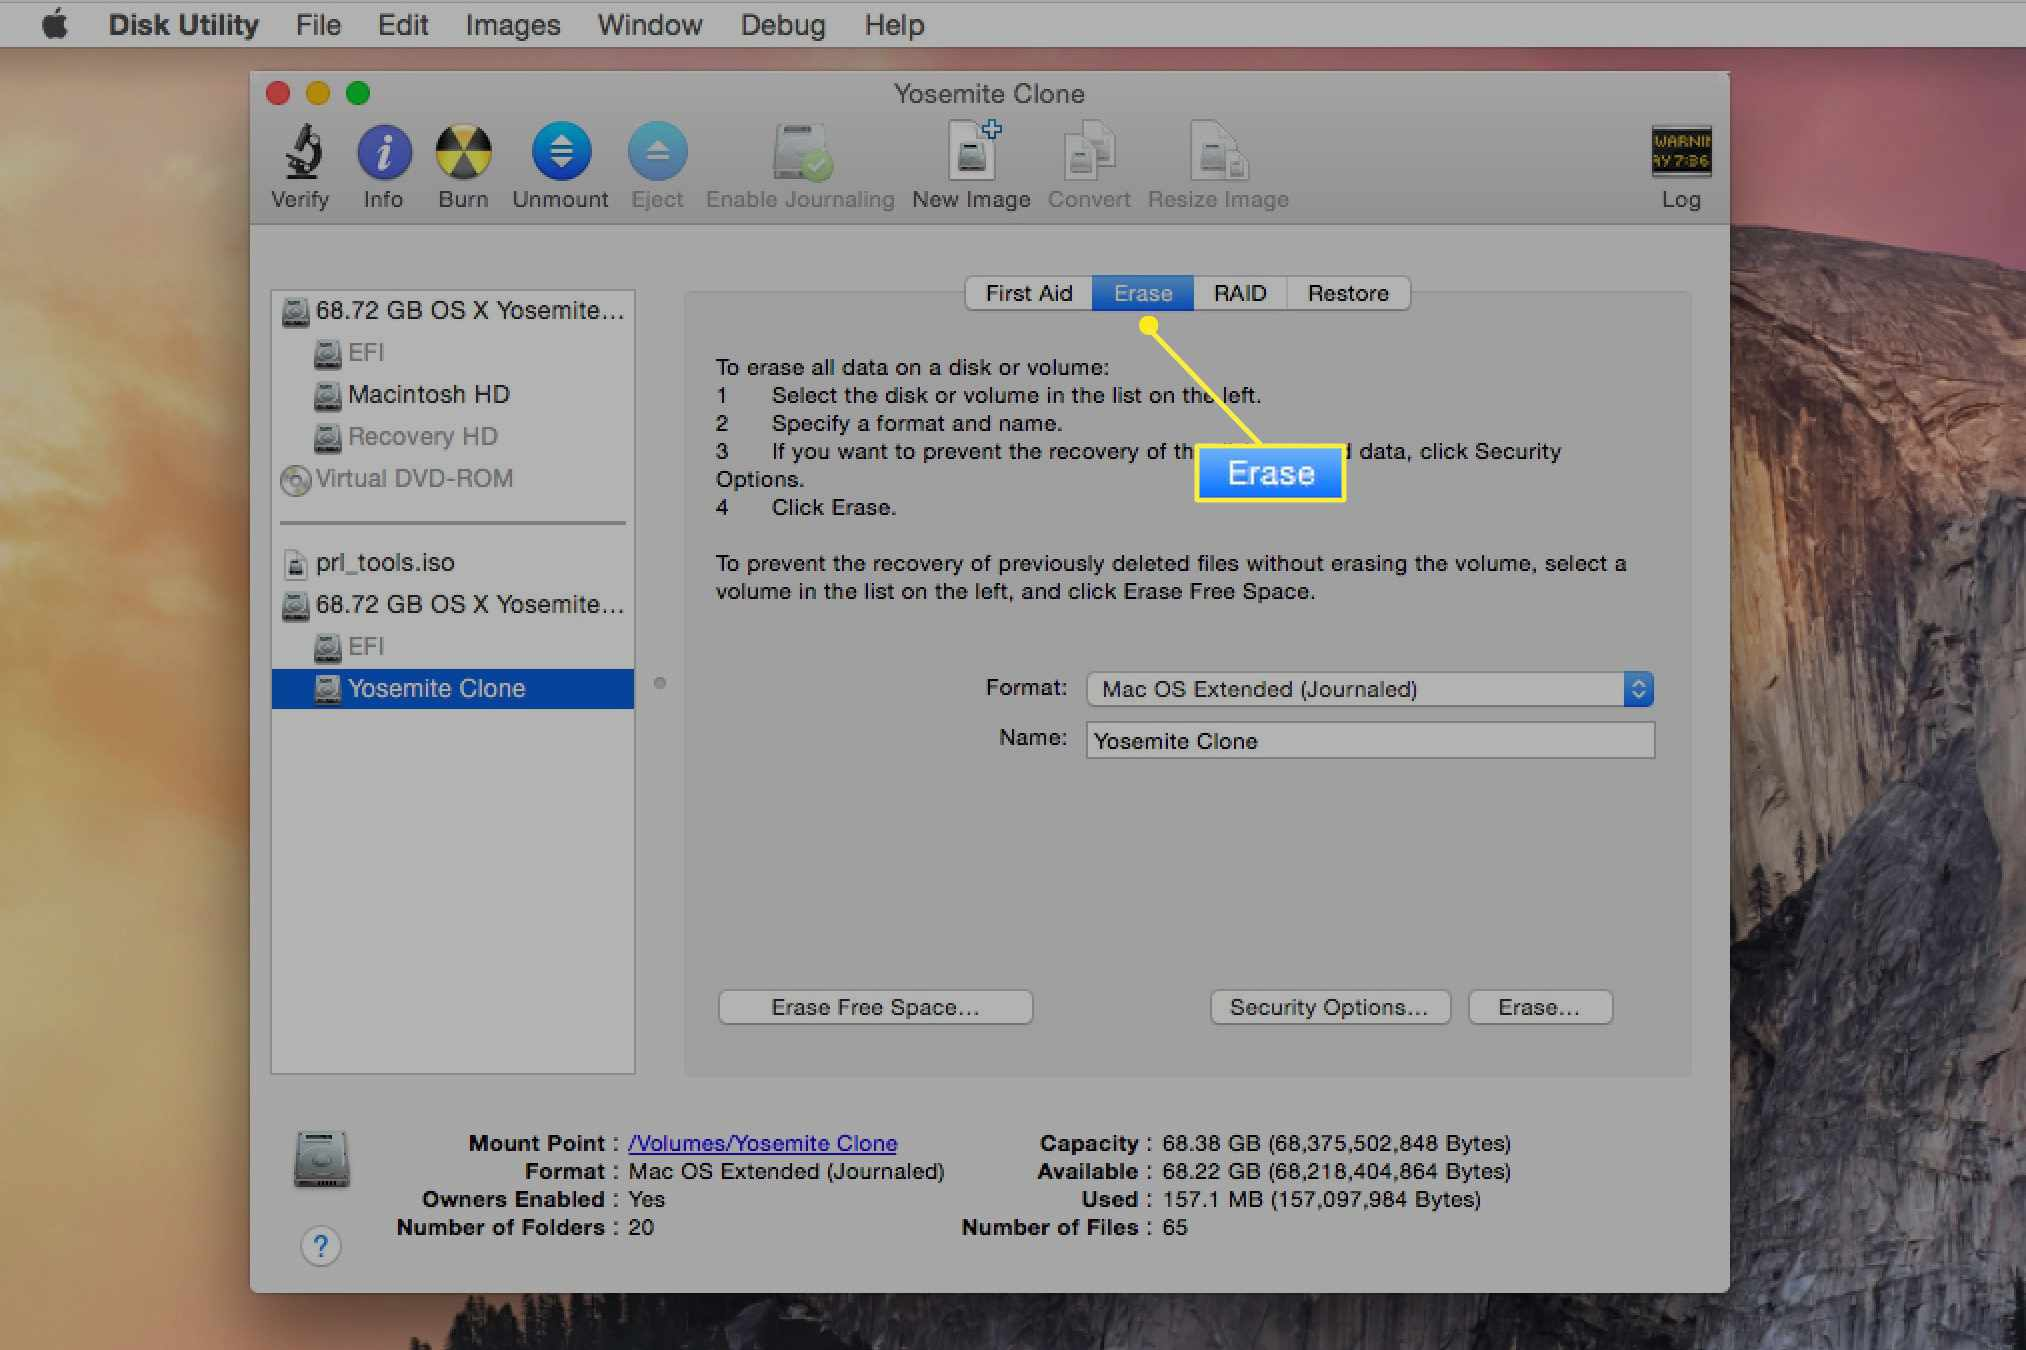 Disk Utility with the Erase tab selected